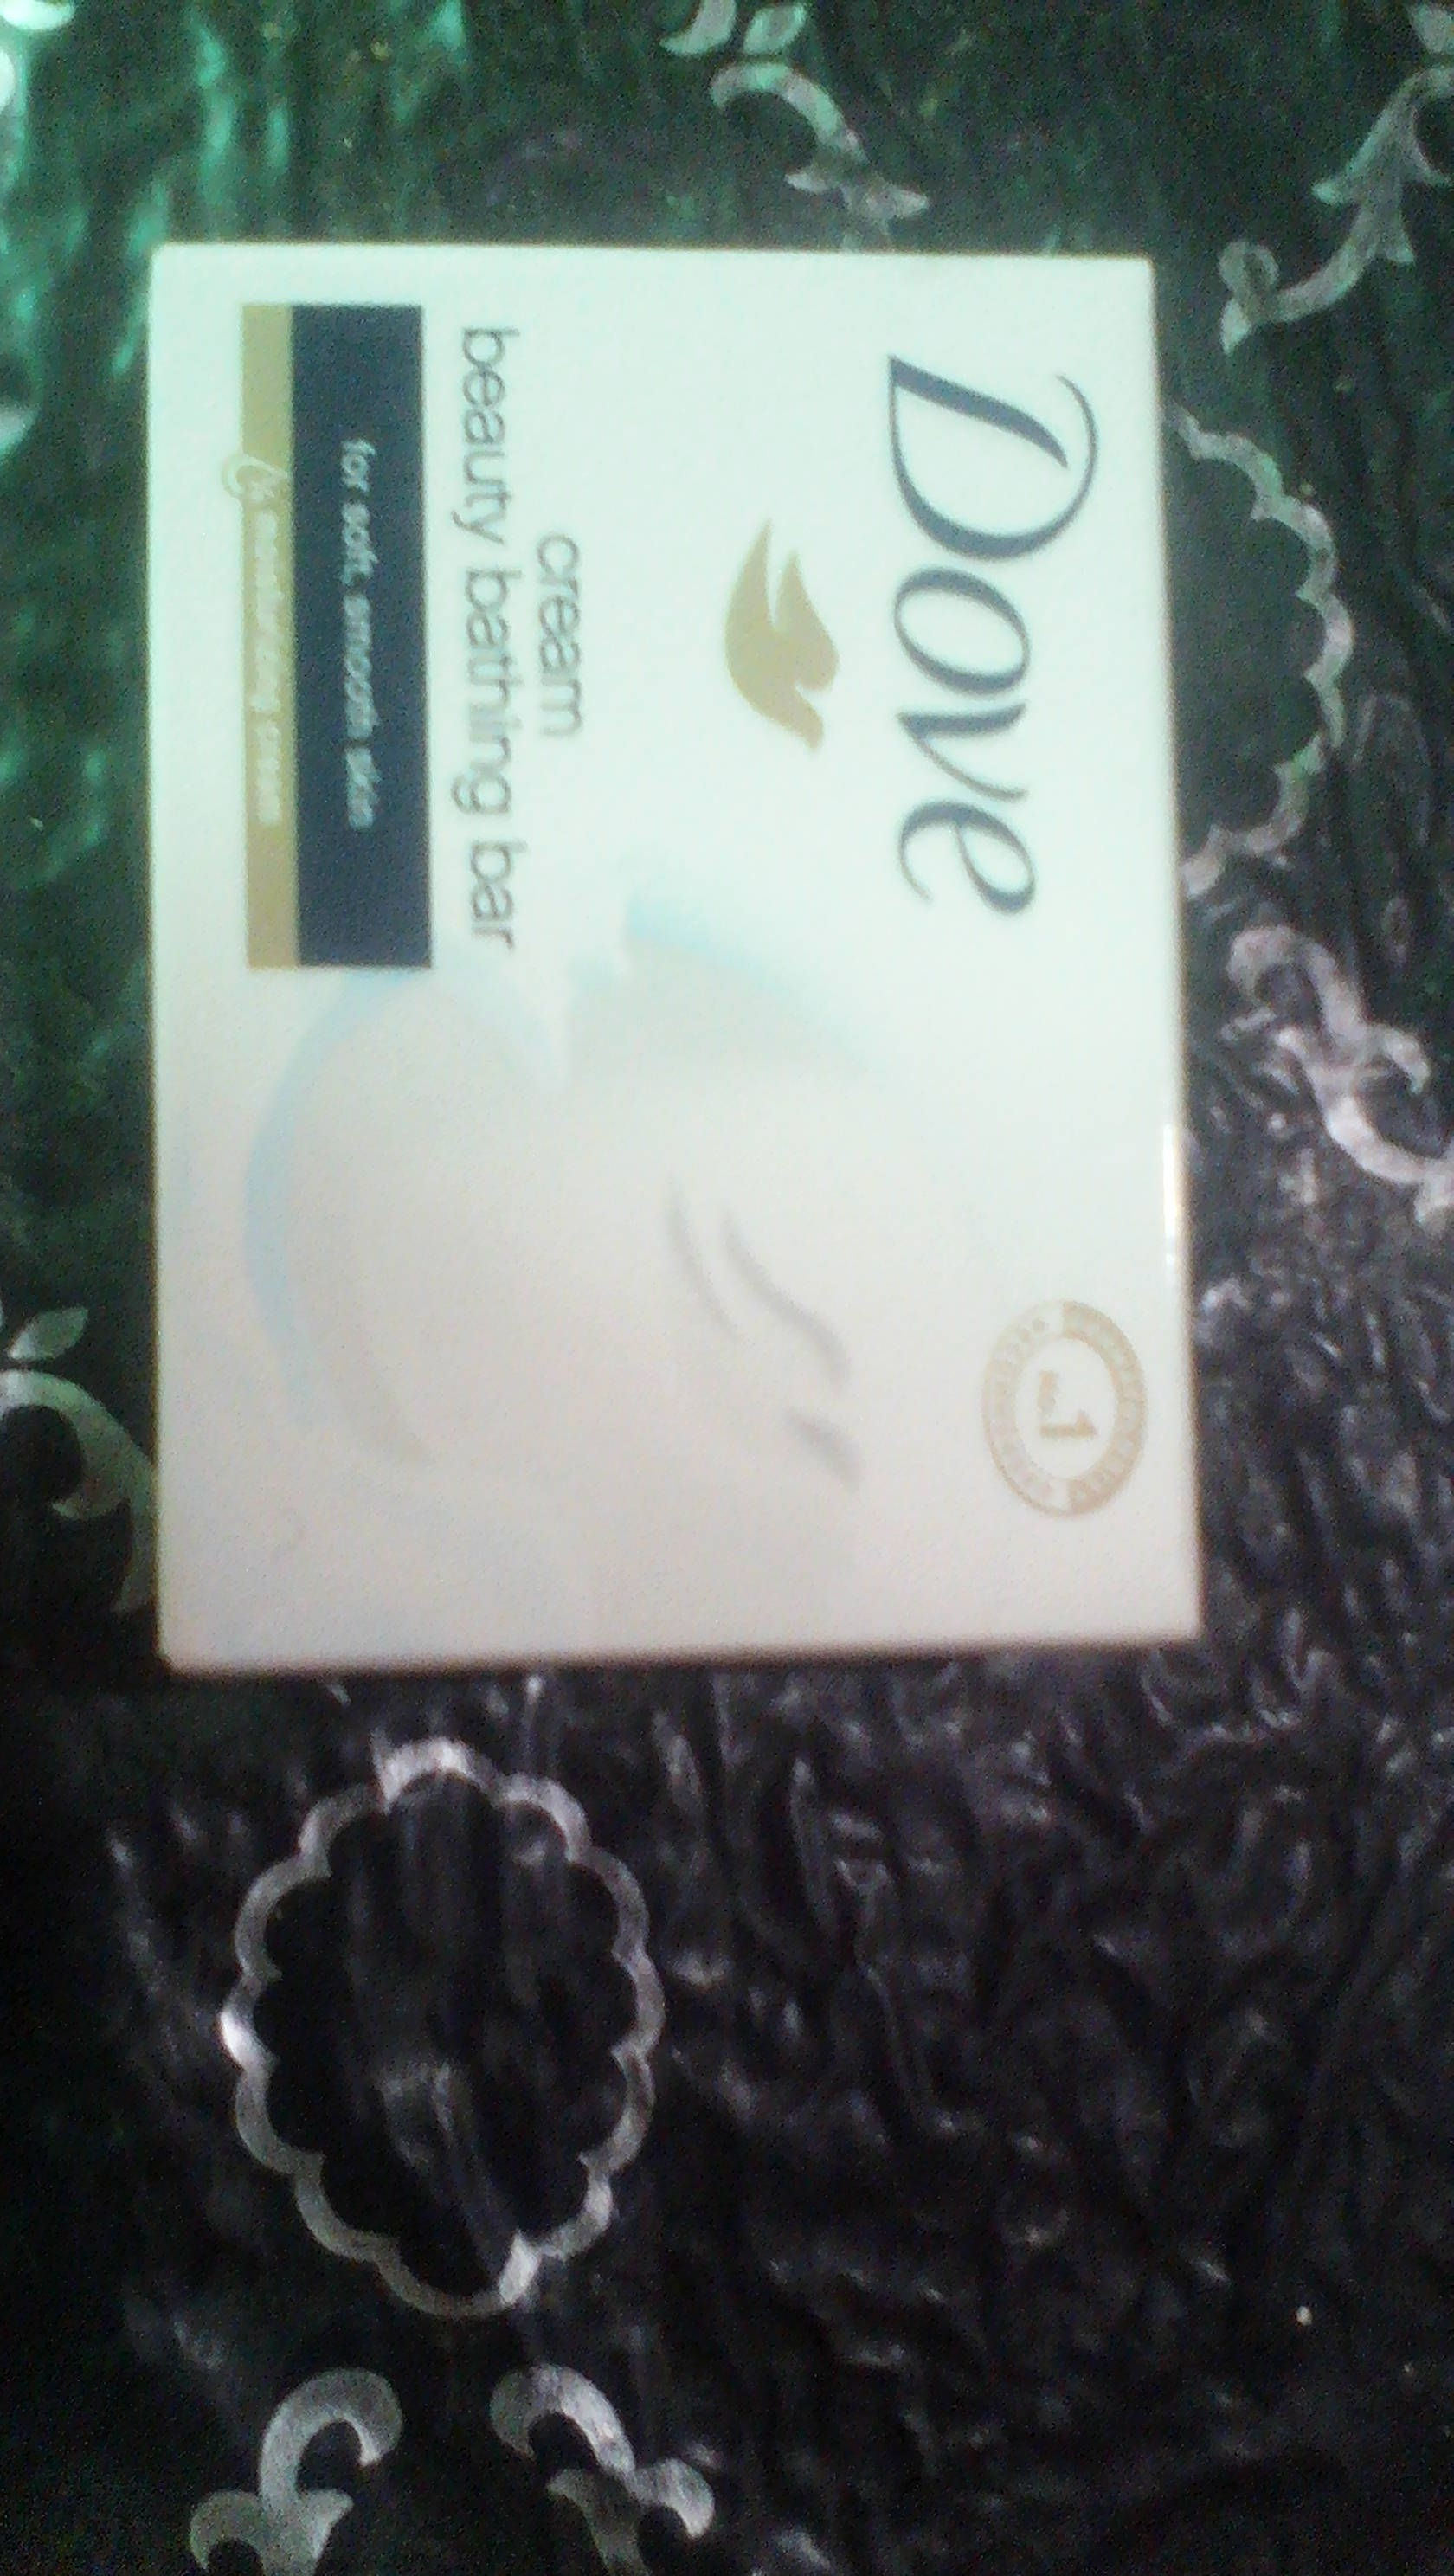 Dove Cream Beauty Bathing Bar-No. 1 recommended shop-By amisha_sachan-1